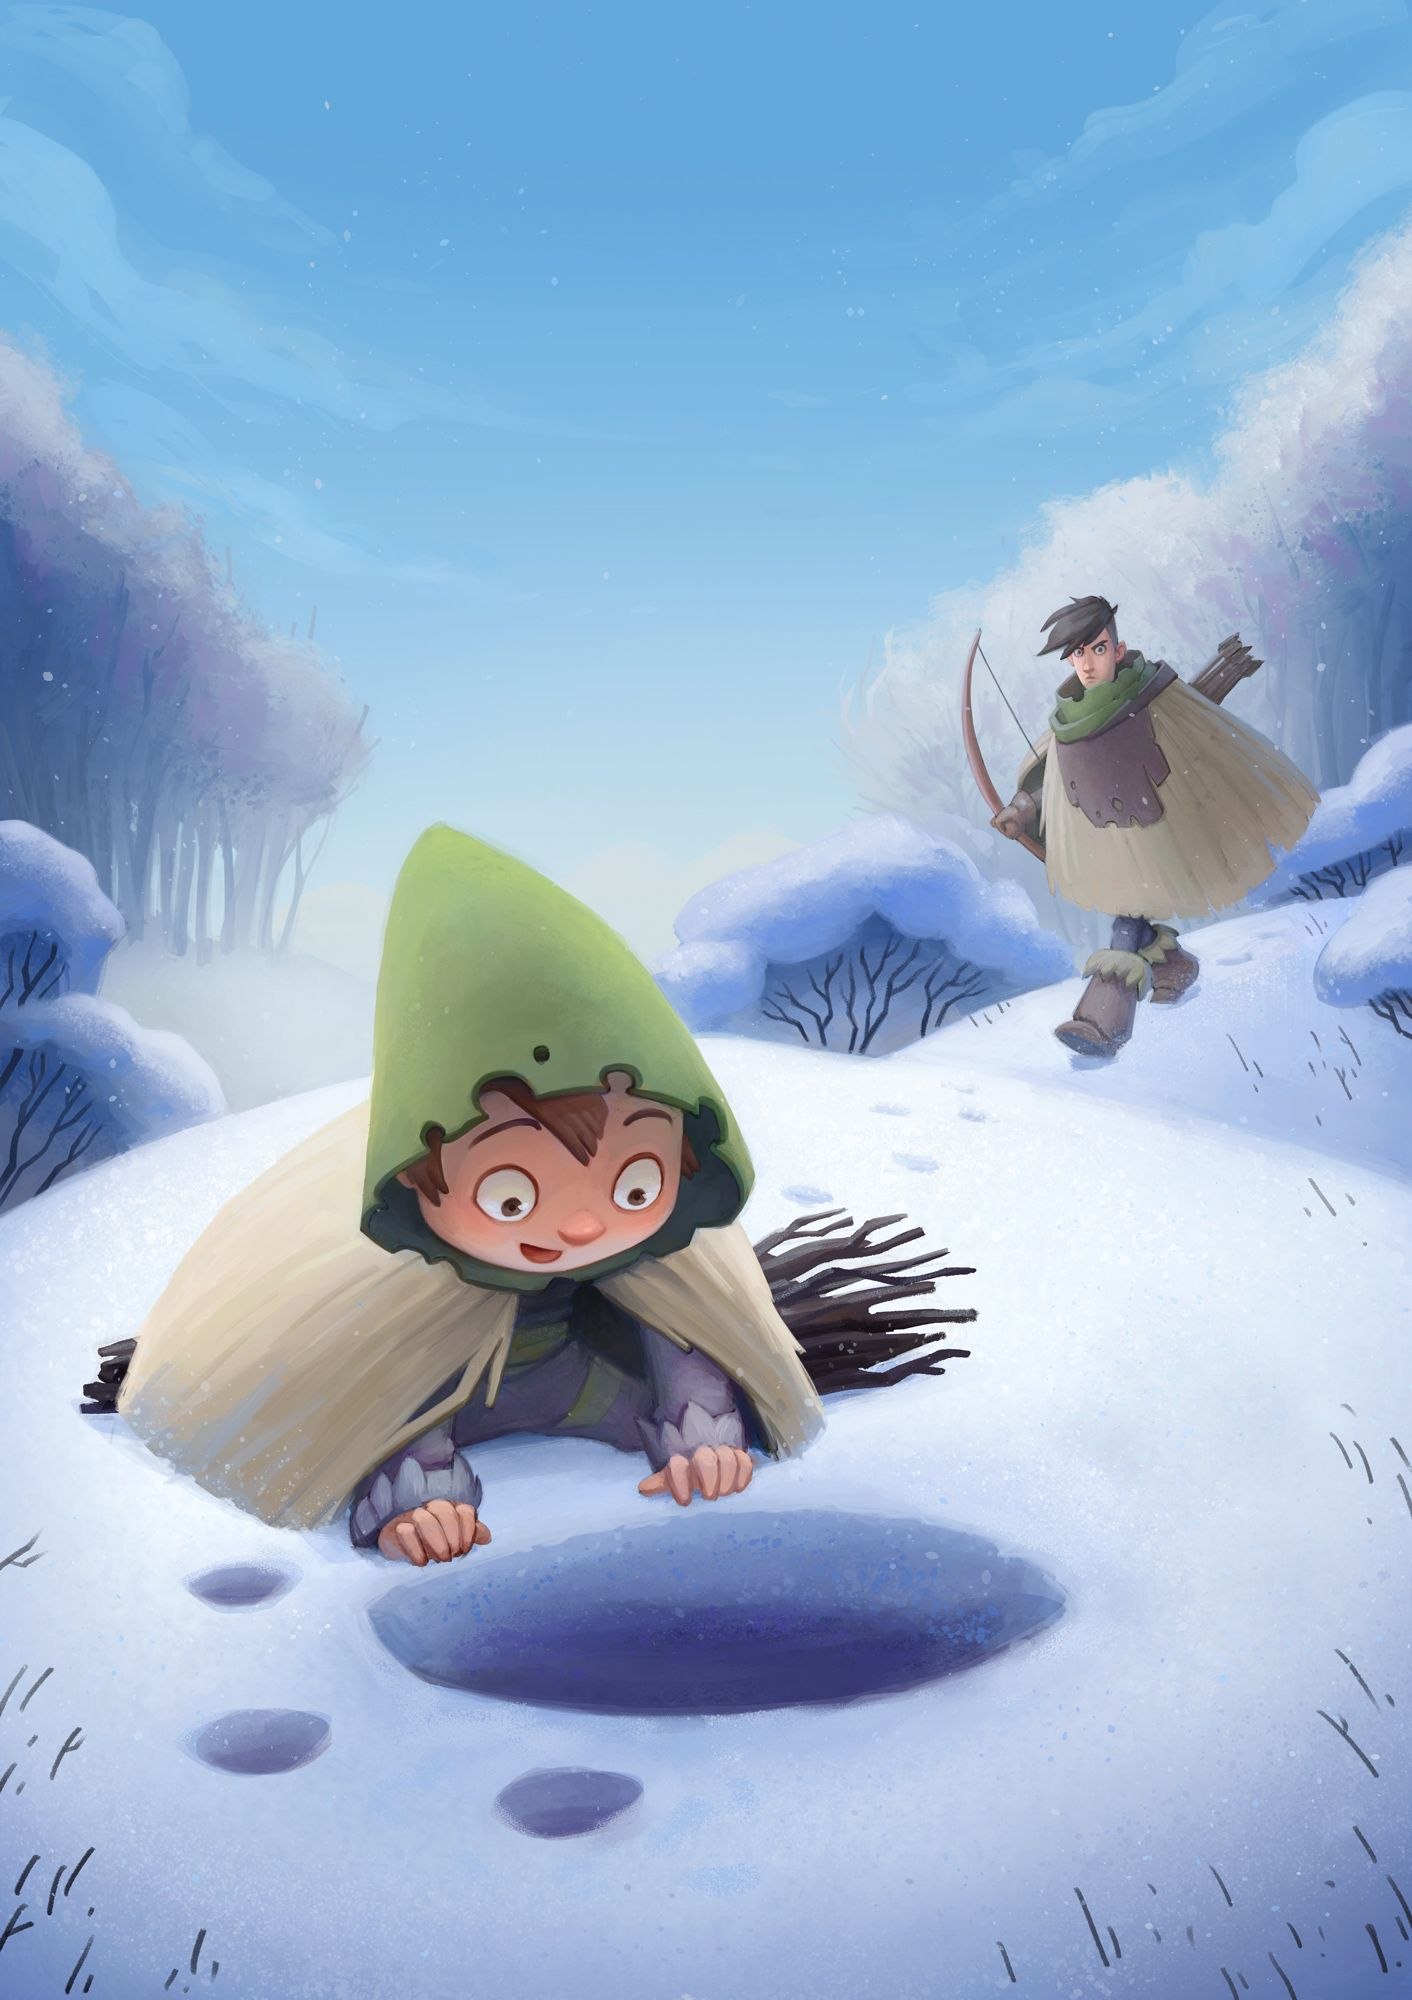 Illustration_Book_Tracks-in-the-snow_Zoltan_Csomai.jpg